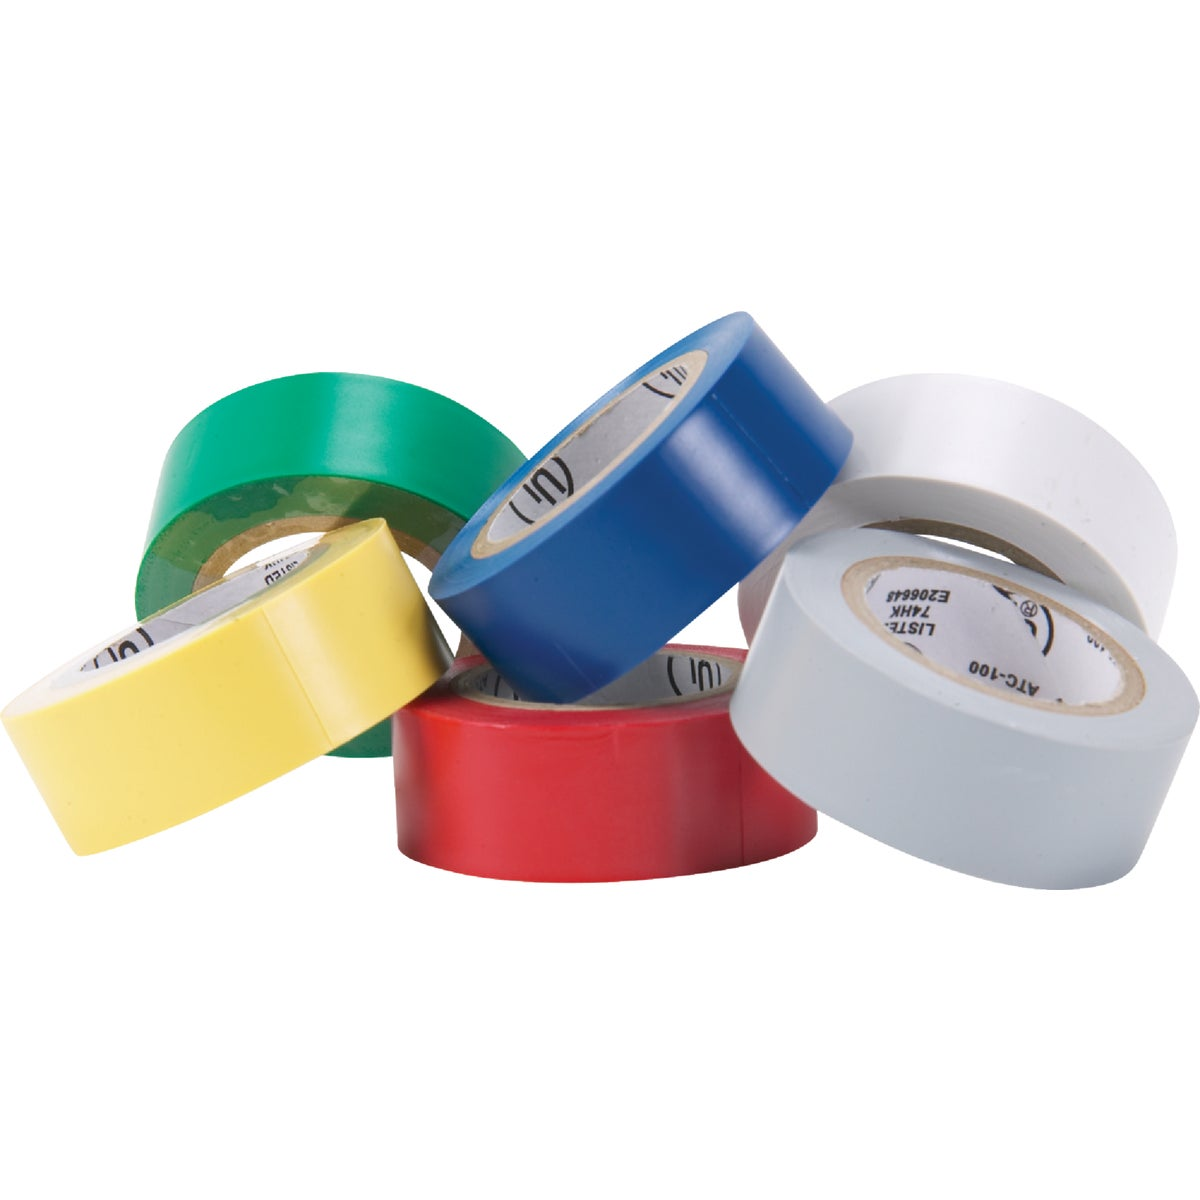 6PK COLR ELECTRICAL TAPE - 538353 by Do it Best